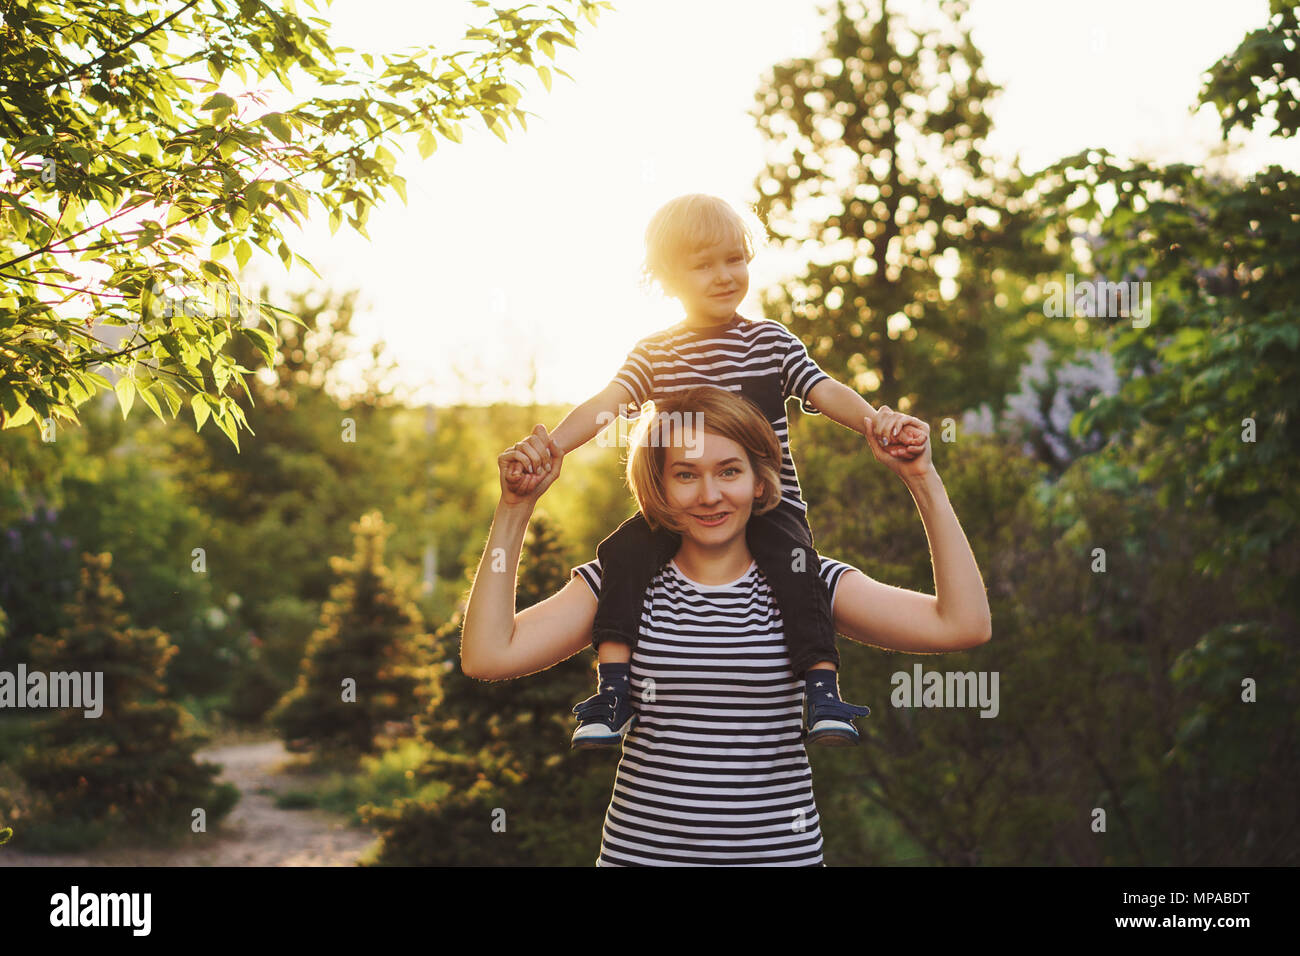 Mother and son in striped T-shirts. Woman is holding boy at piggieback. Family time together. Have fun - Stock Image